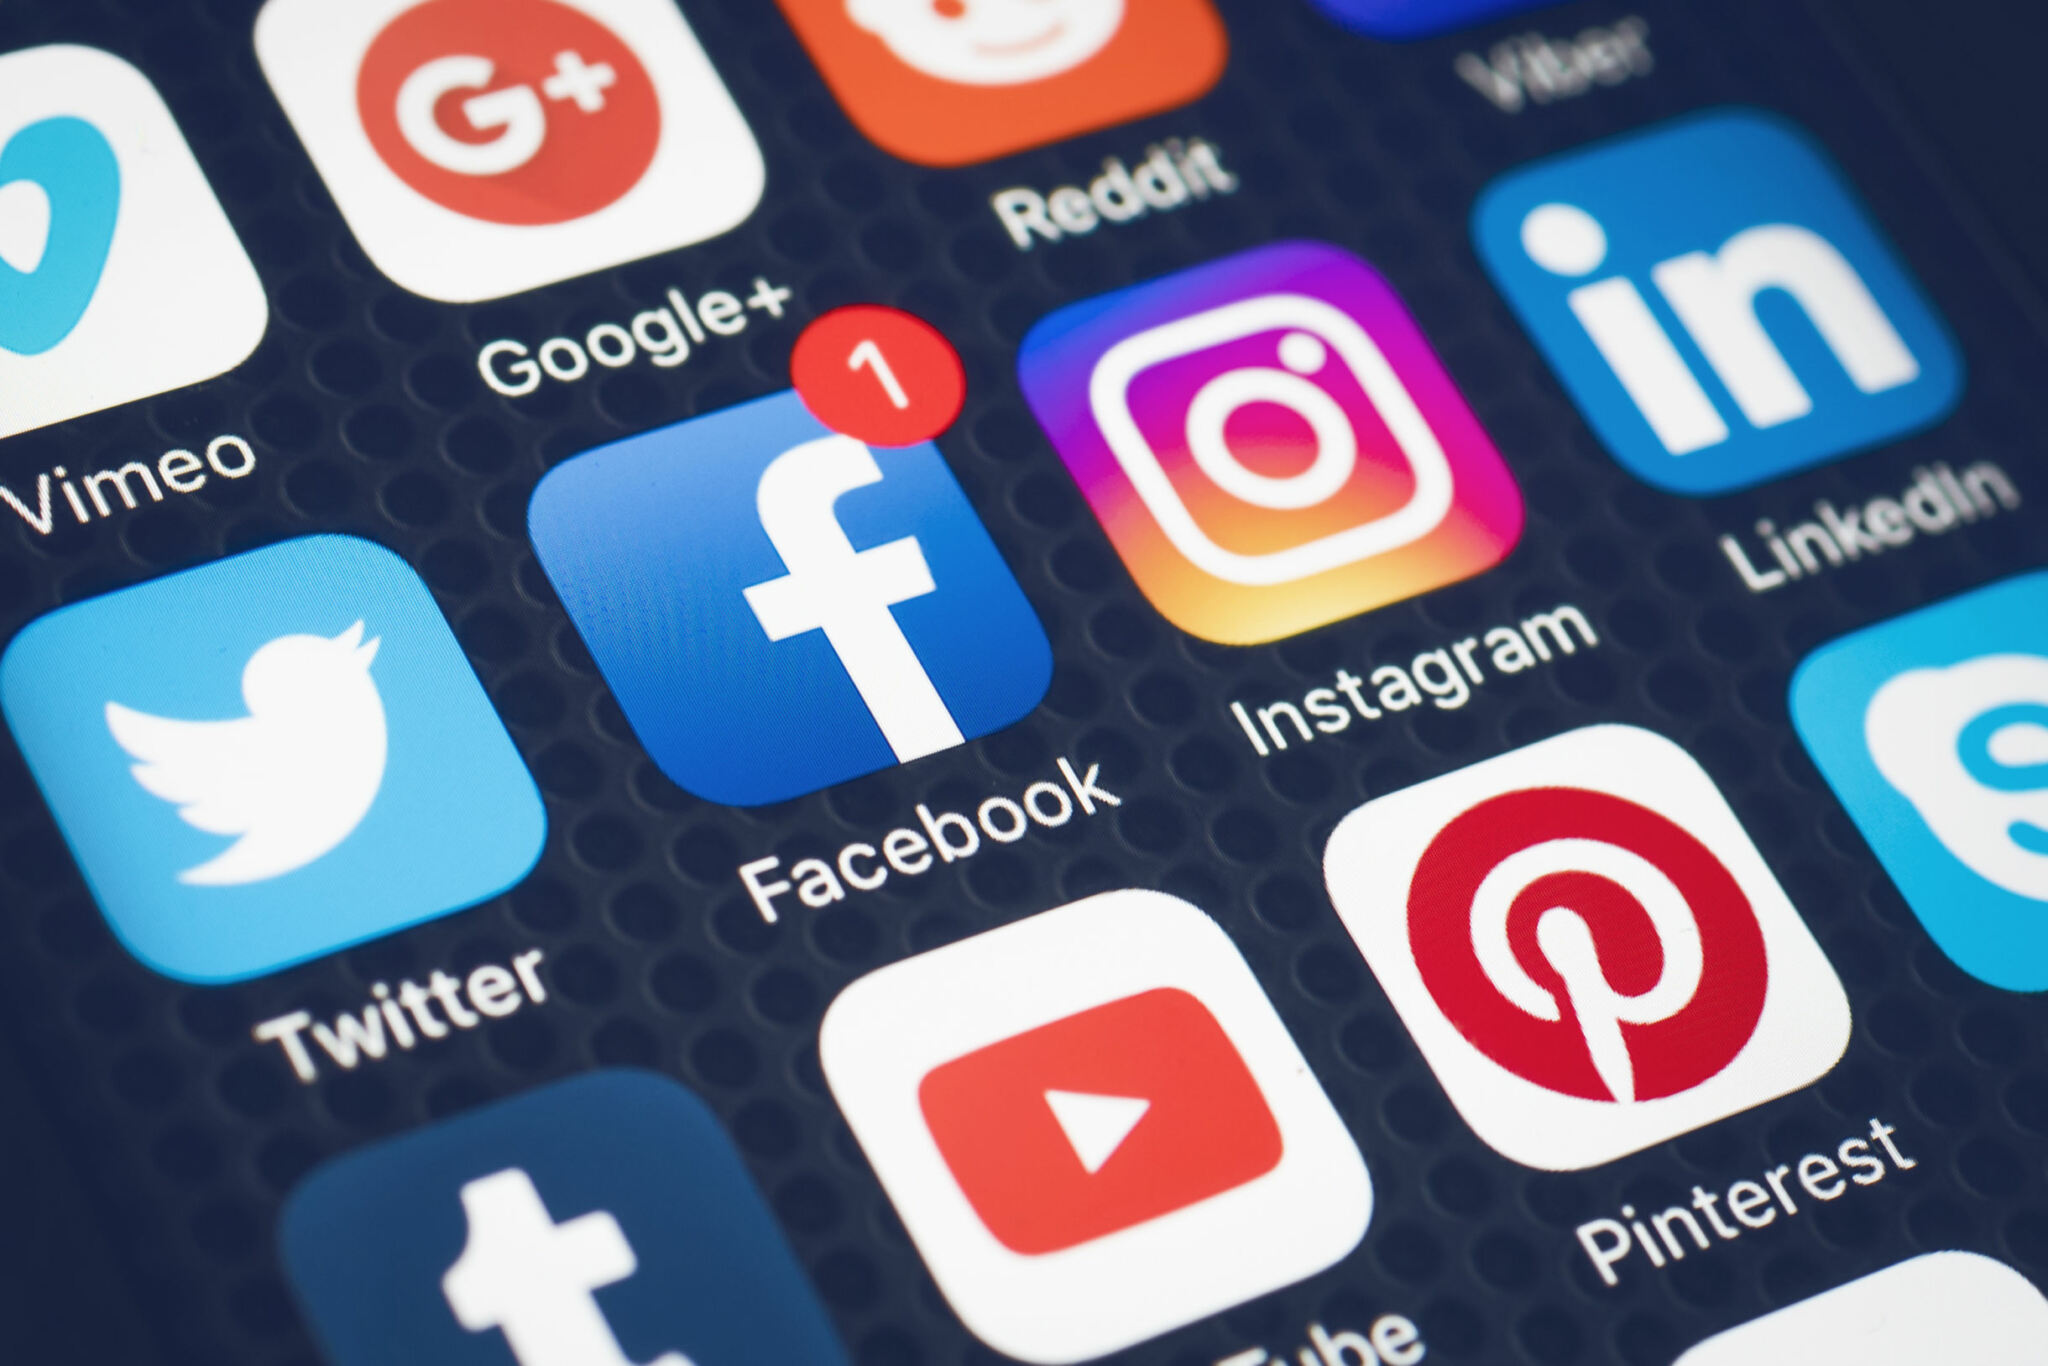 Tune Up Your Tone Of Voice On Social - Retail TouchPoints